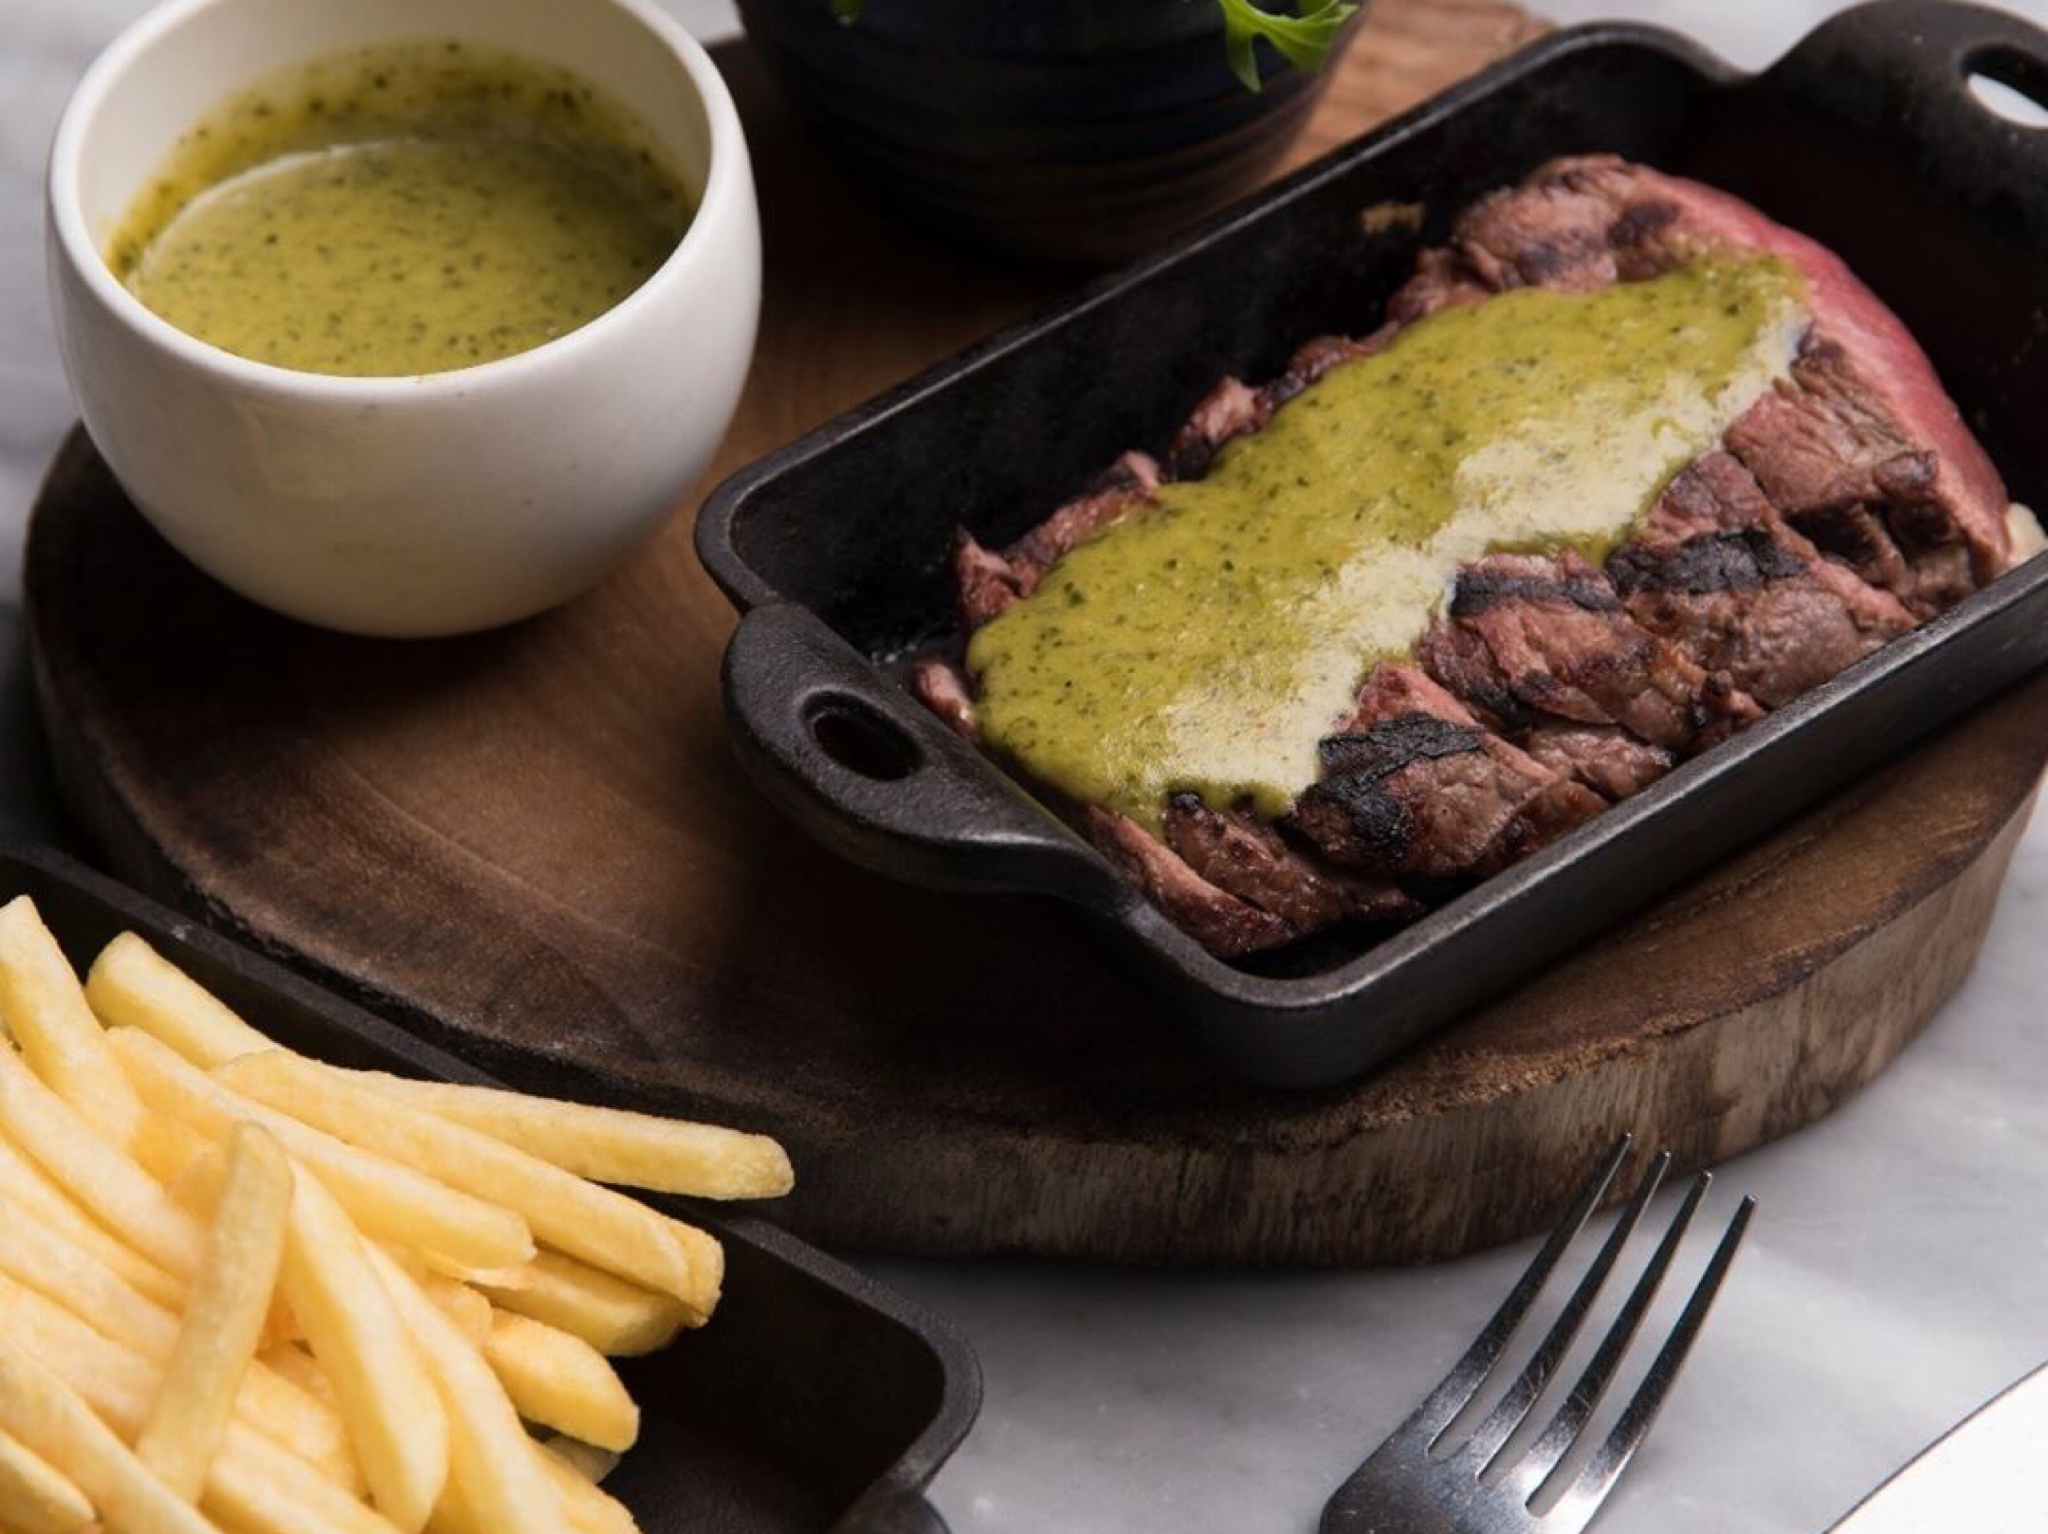 Steak Frites at Bertin Bistro Dubai